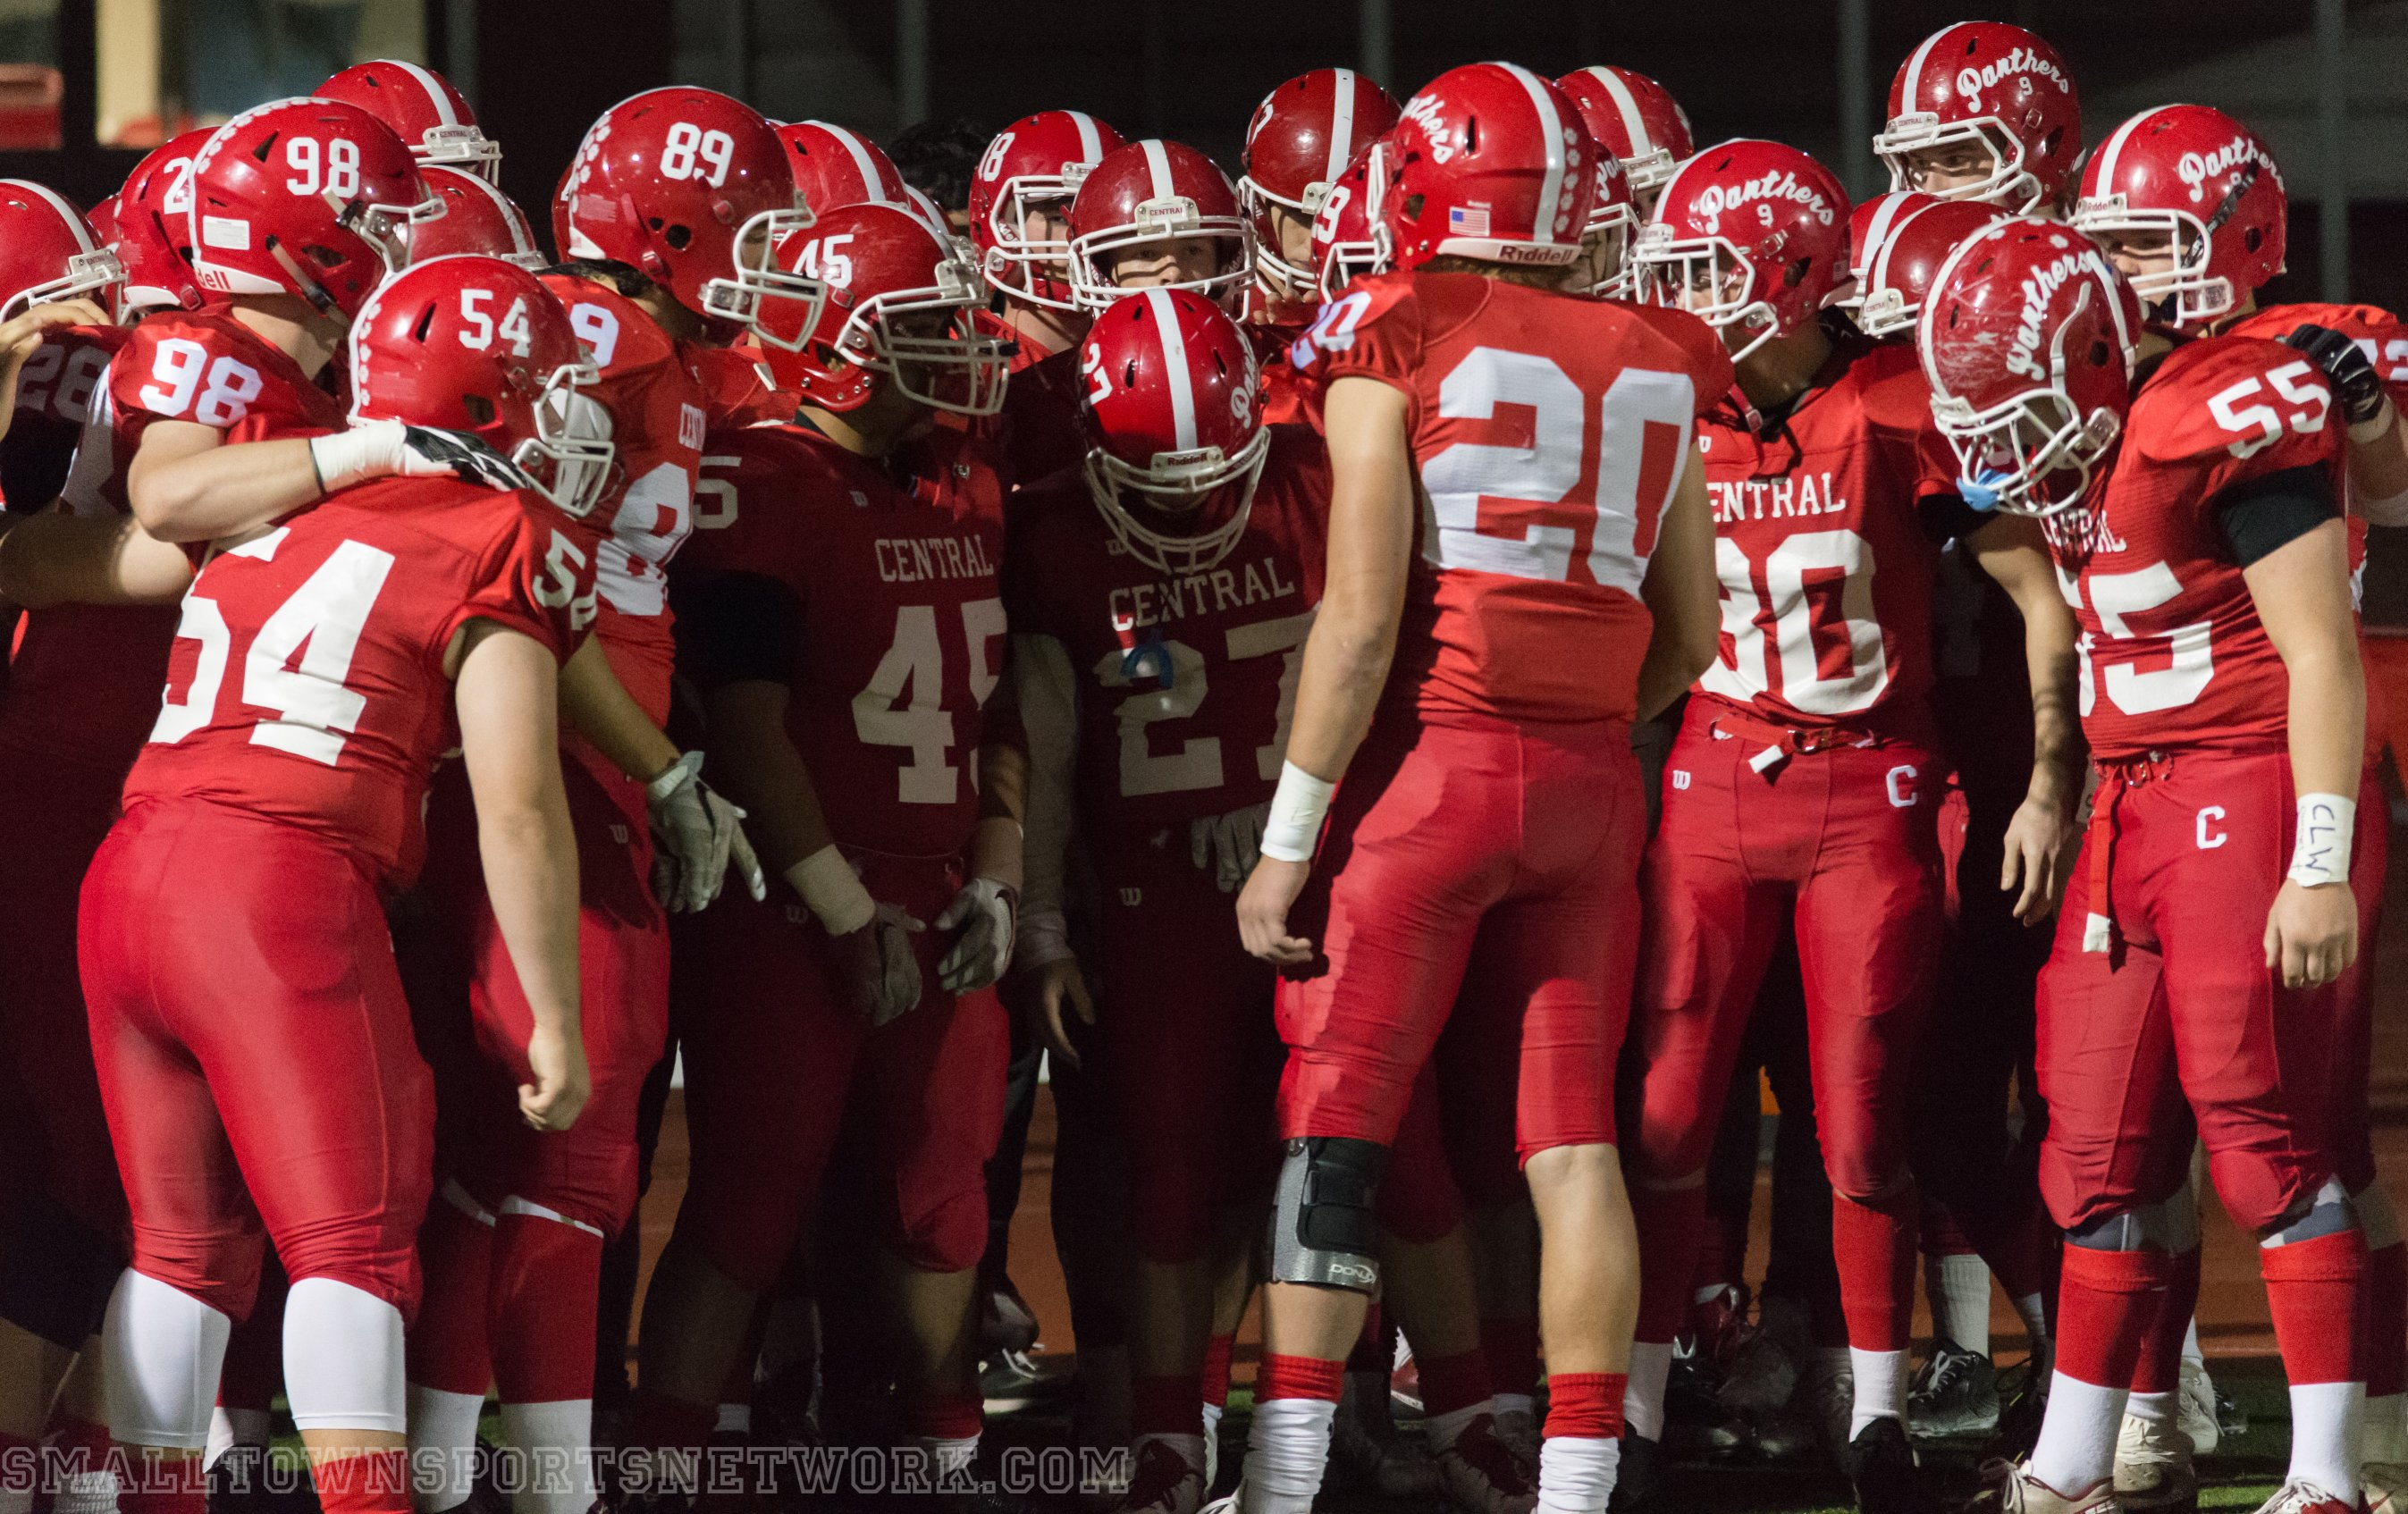 Central Advances in 5A Playoffs After Win Over Redmond